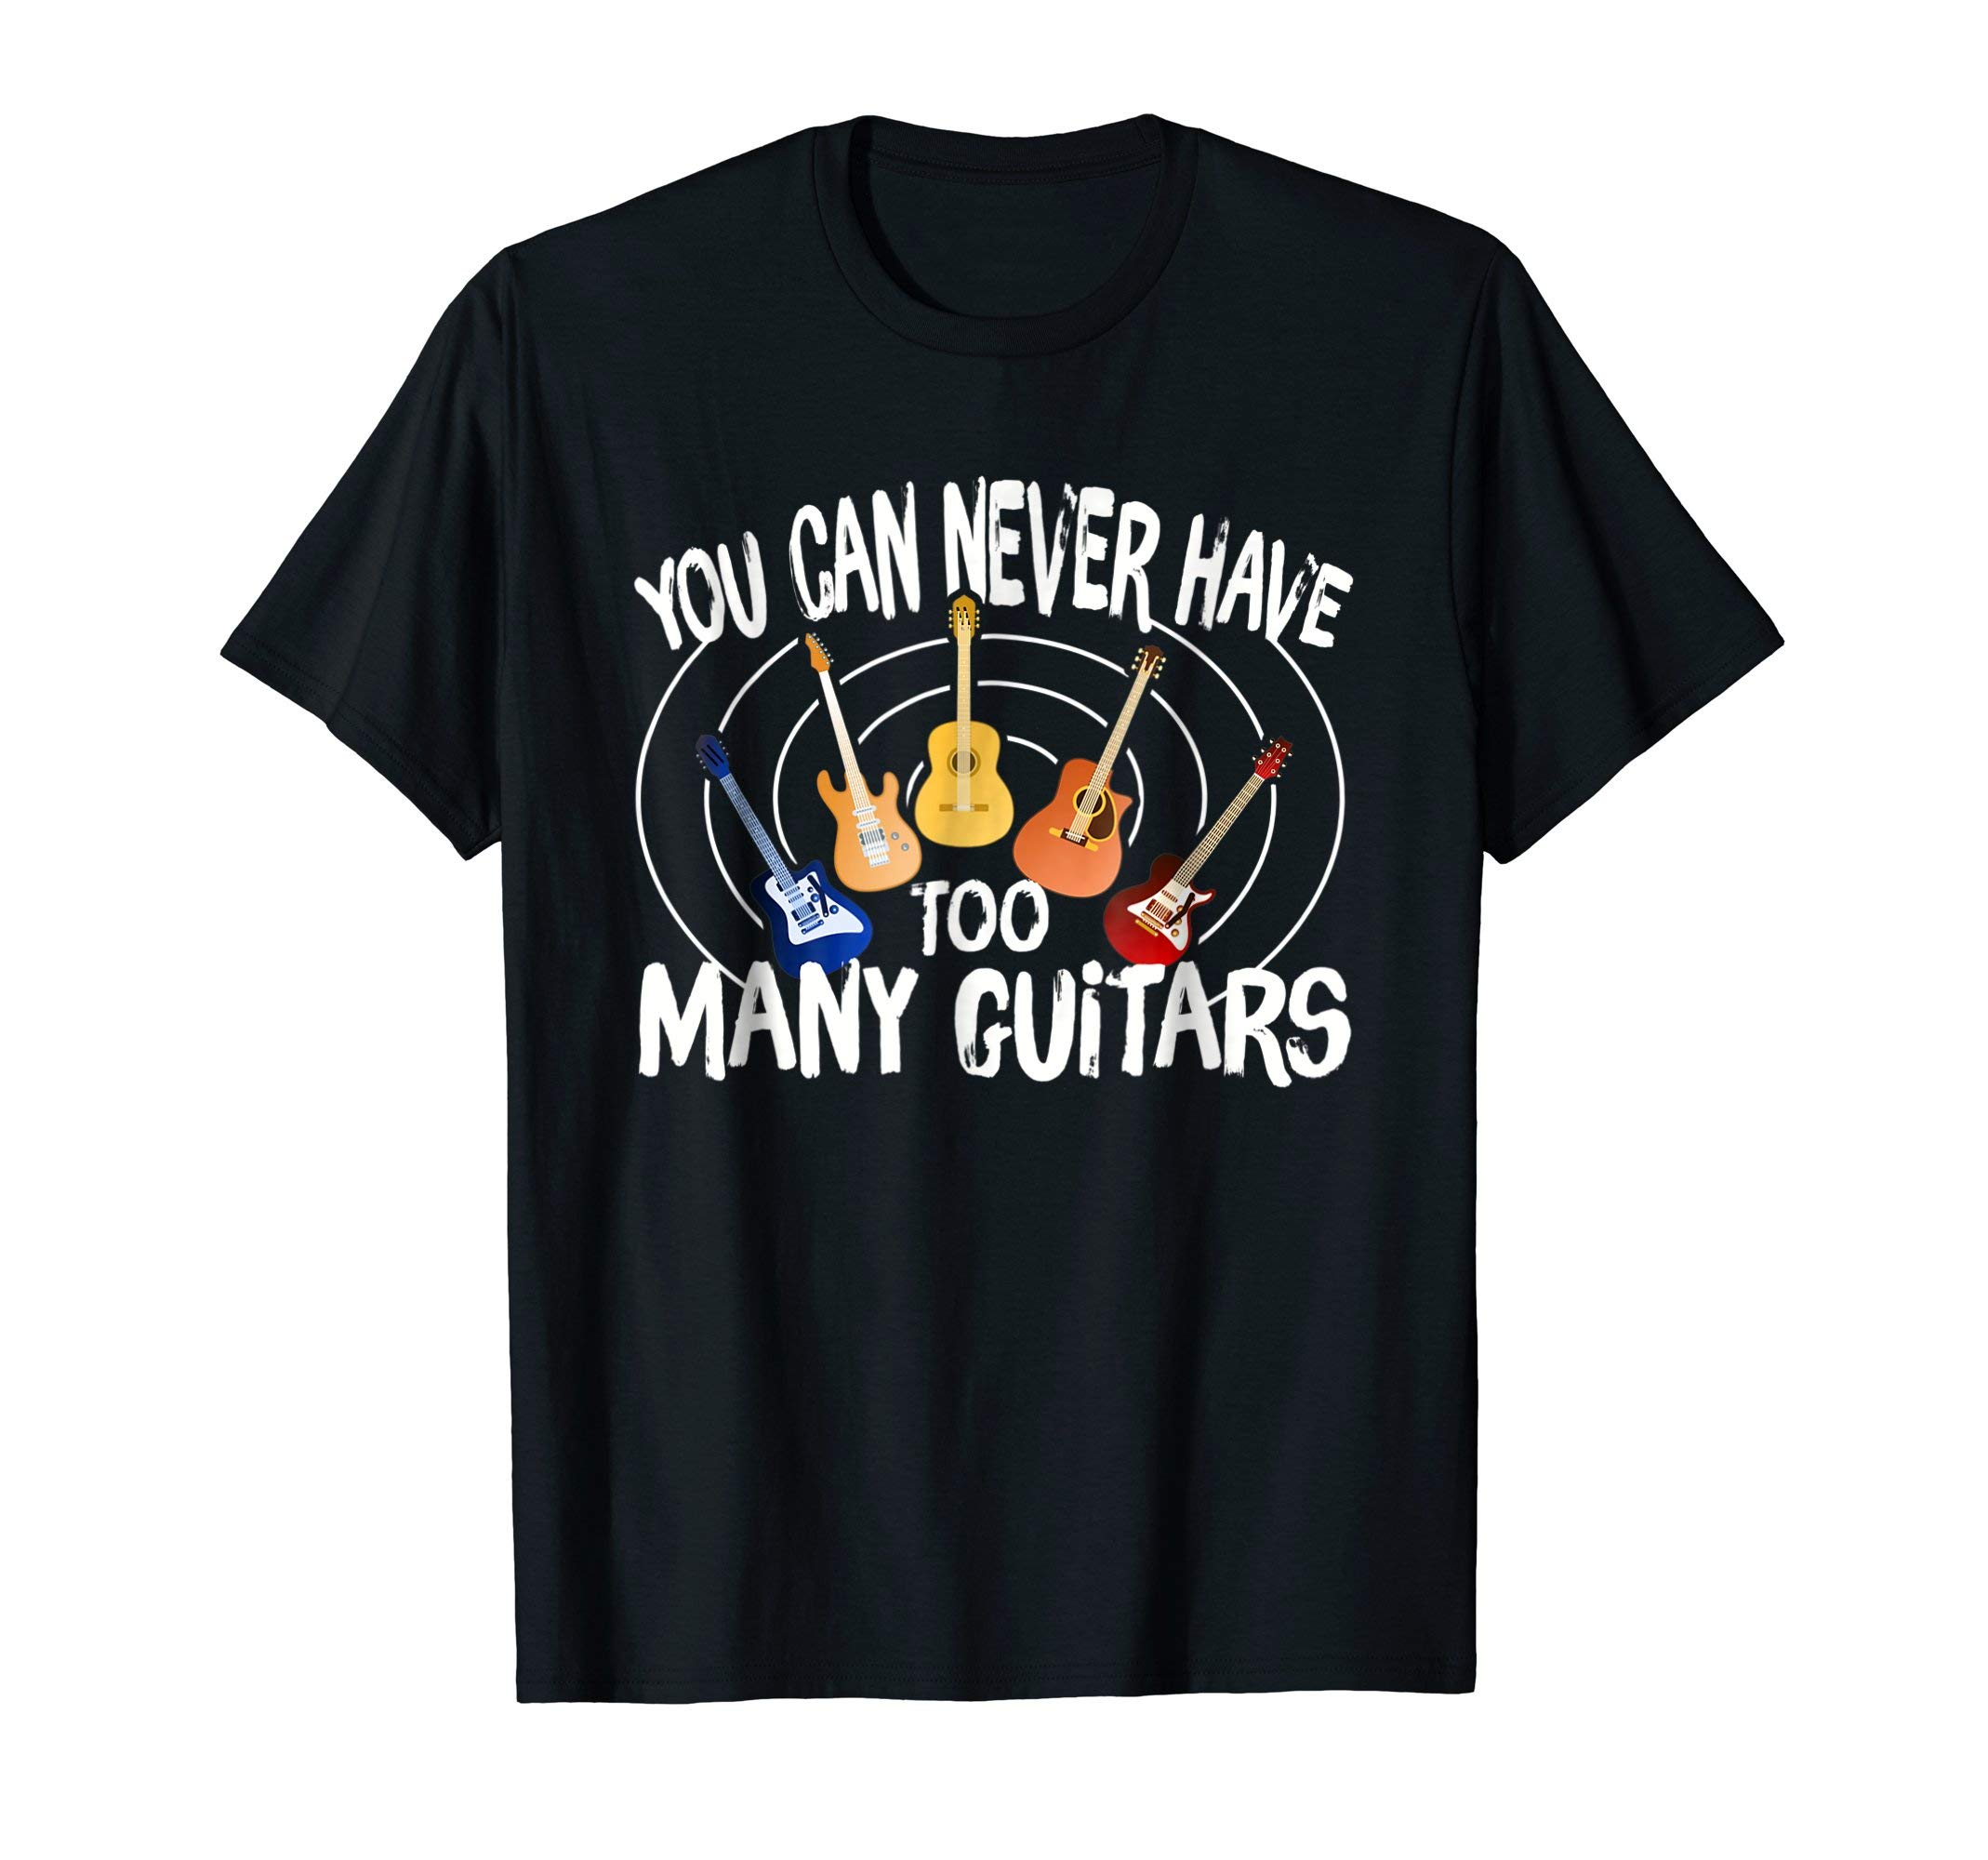 You Can Never Have Too Many Guitars Guitars Lover Shirt by Guitars Lover Custome funny shirt